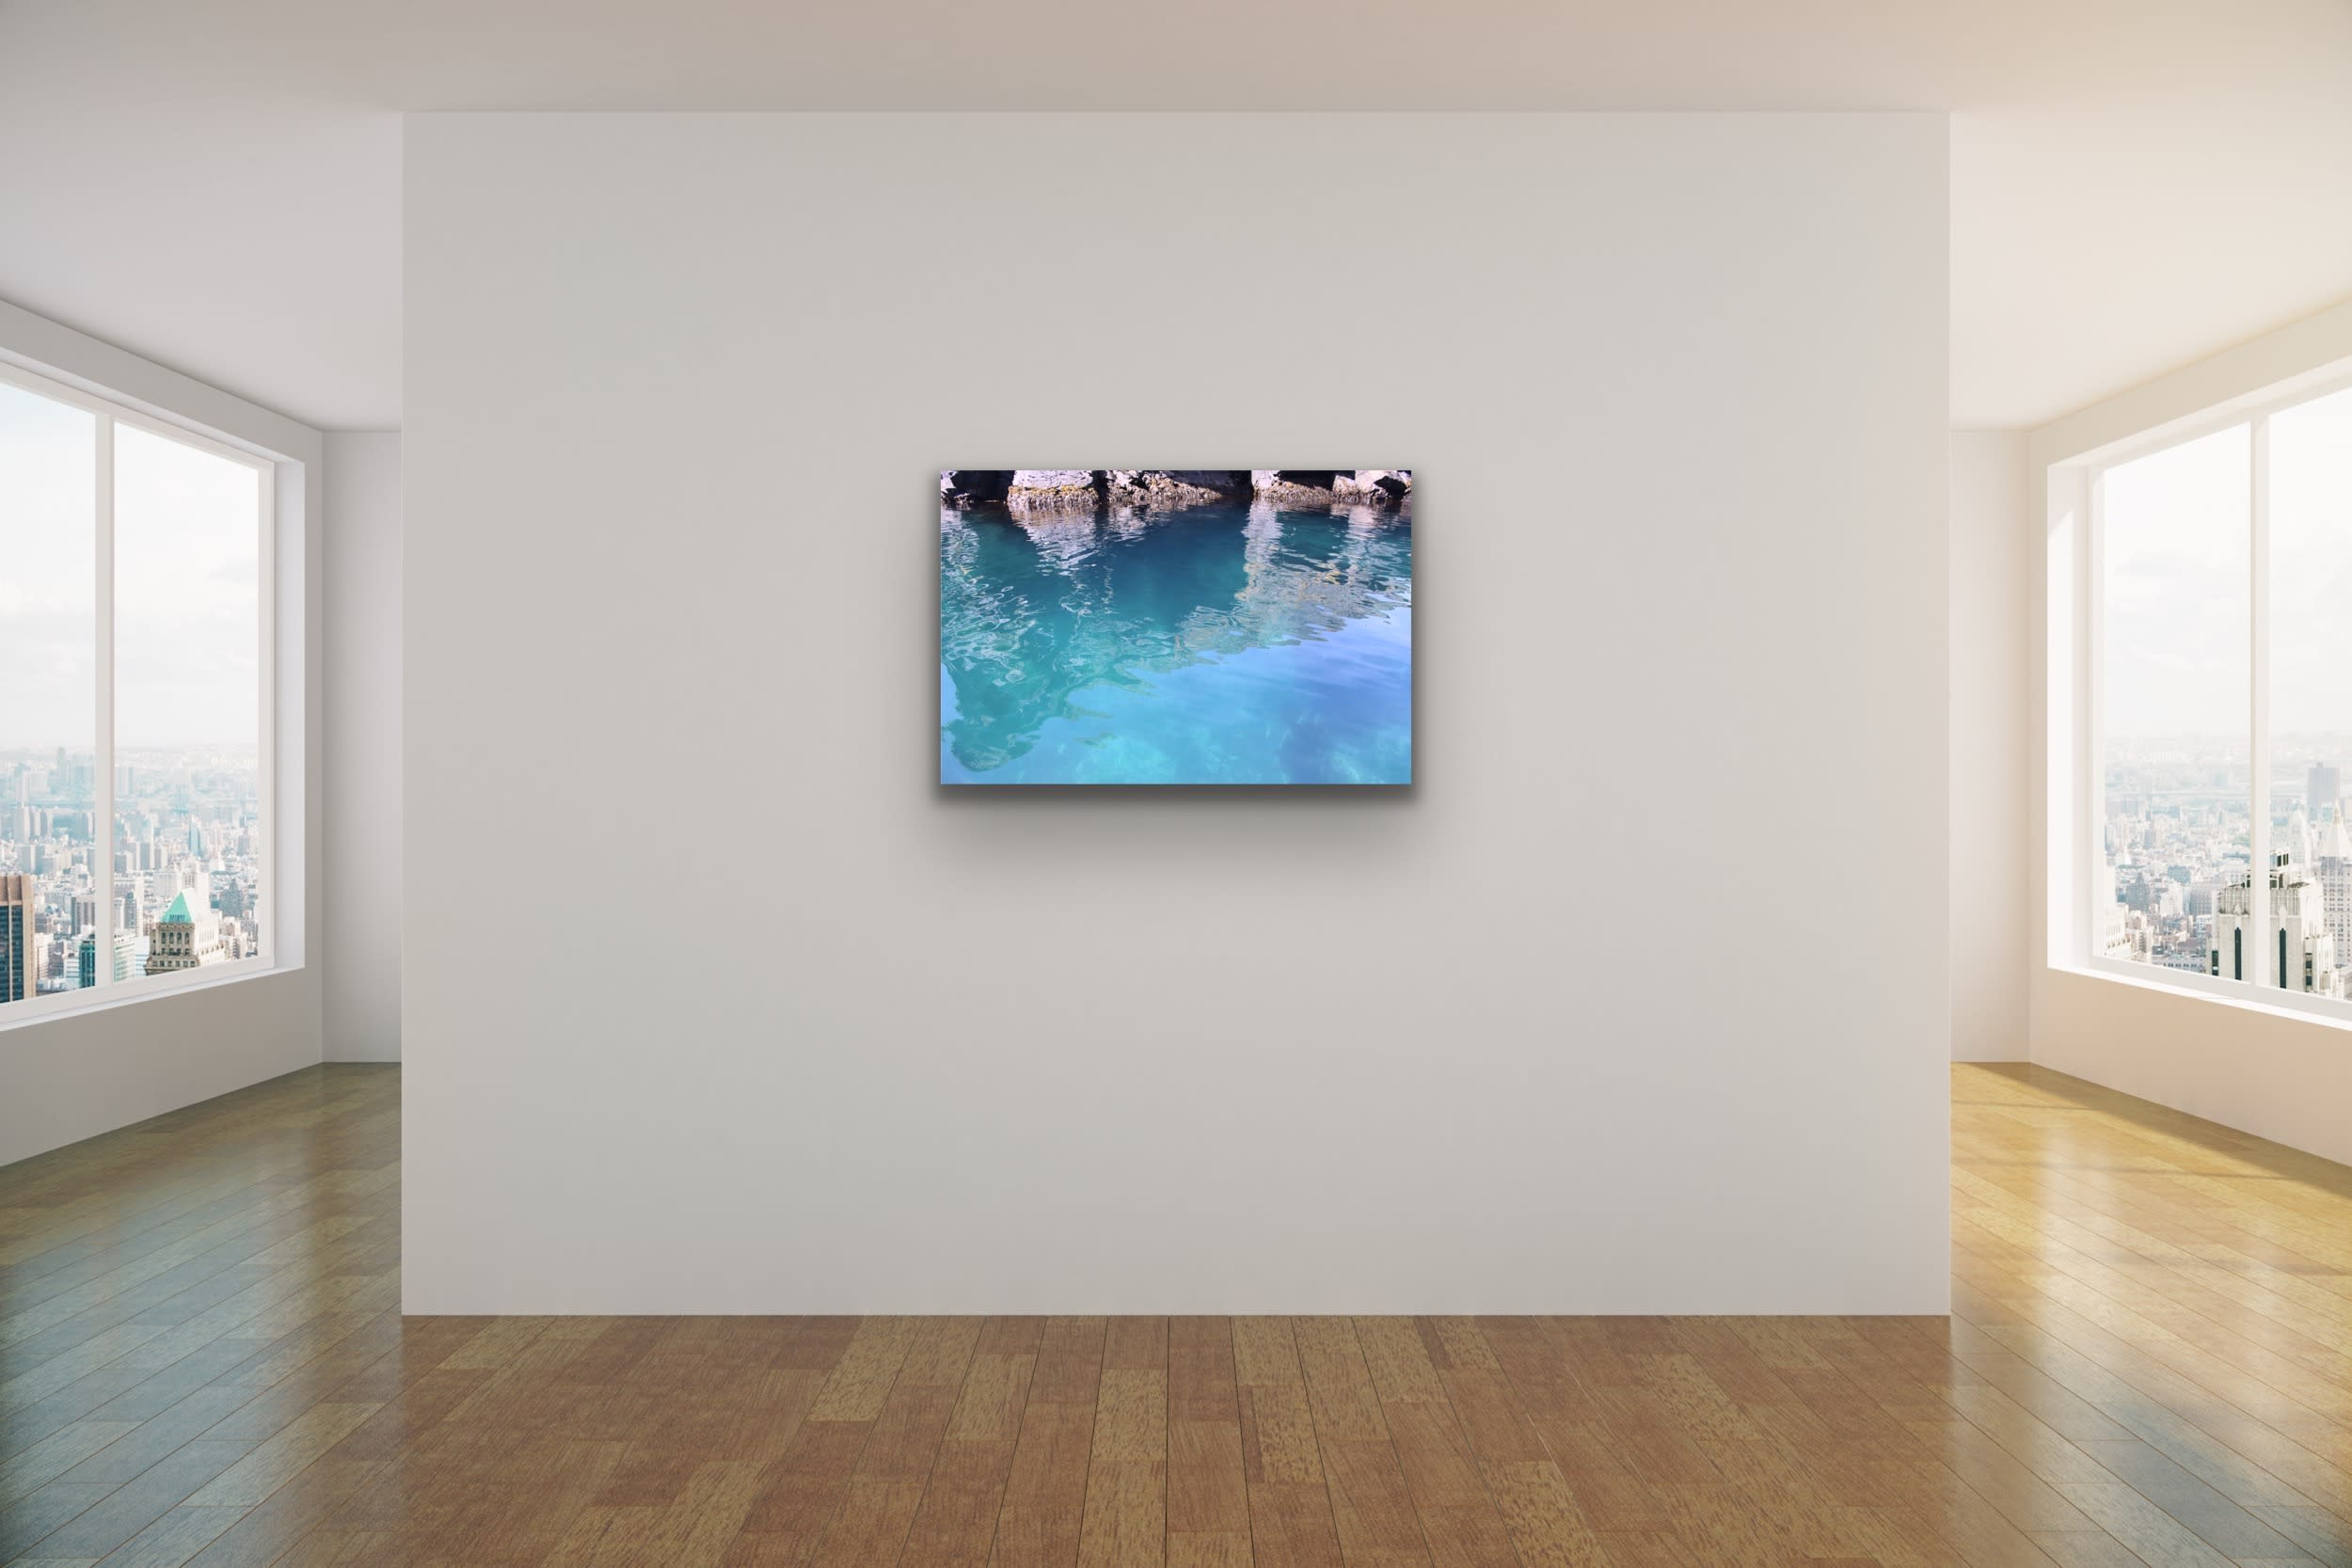 <div class='title'>           Carina Francioso Mock Ups Maui Art Gallery Evo Kammy Hodges Water Photography 7         </div>